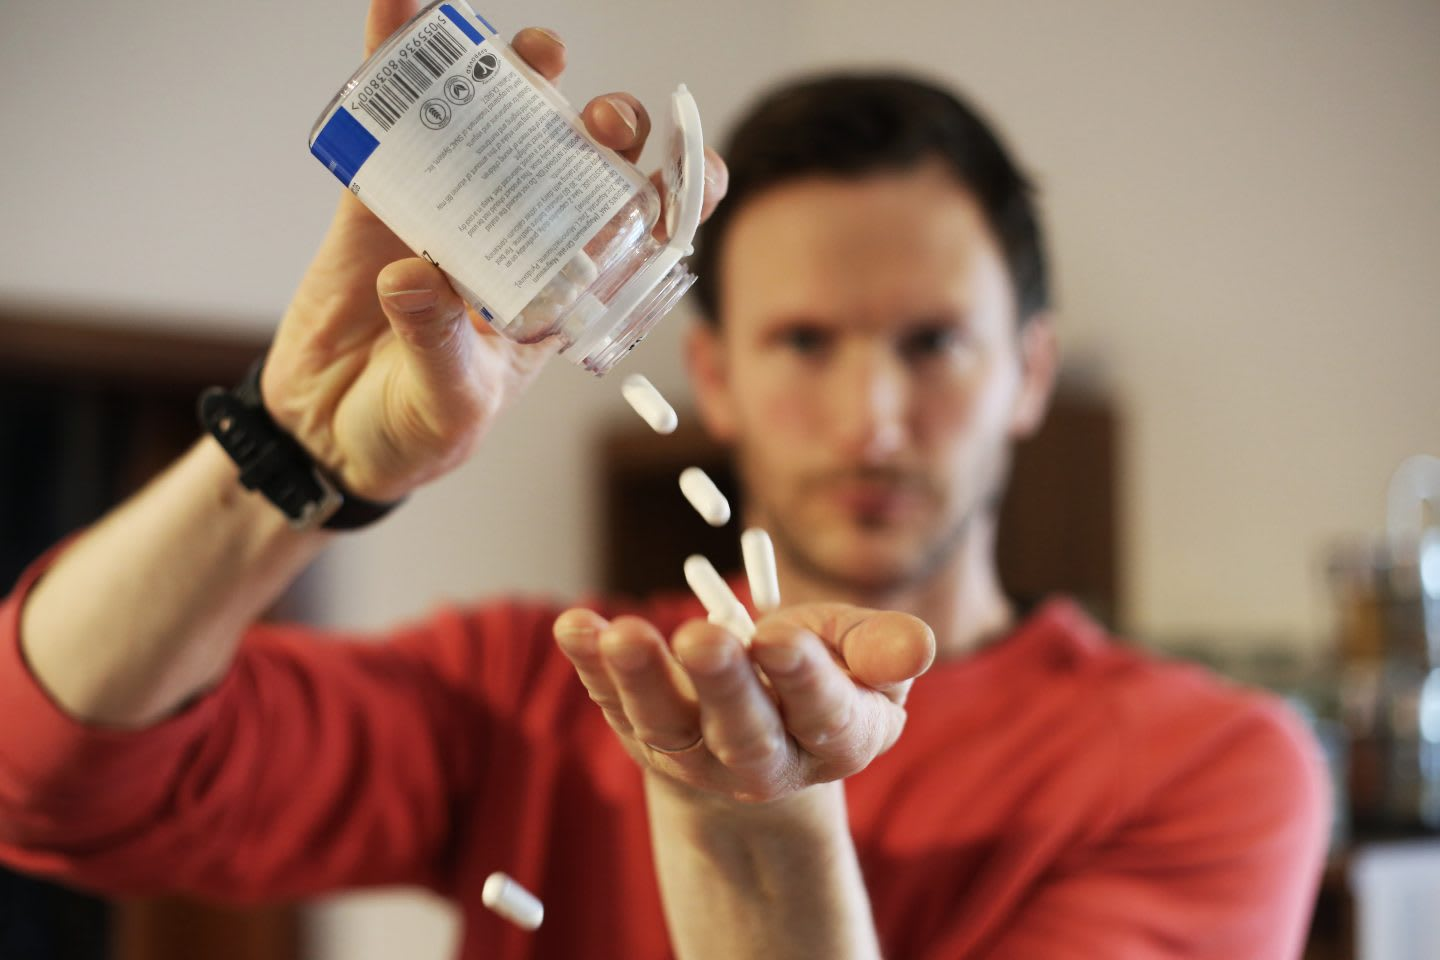 A guy putting a bunch of magnesium supplement pills into his hand. nutrition, health, supplements, magnesium, calm down, improve sleep, GamePlan A